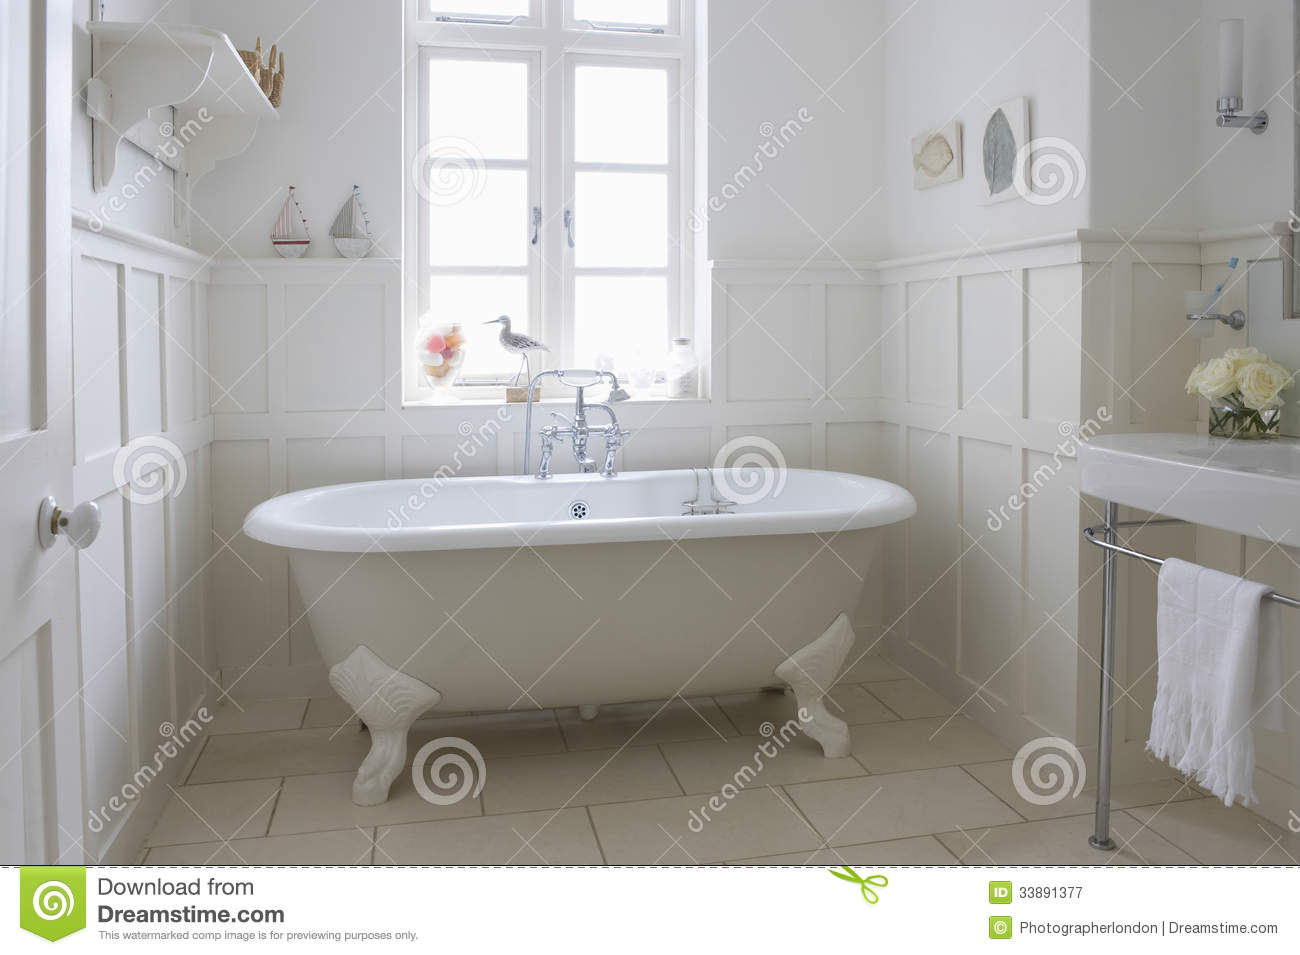 Bathtub In Bathroom Royalty Free Stock Photography Image 33891377